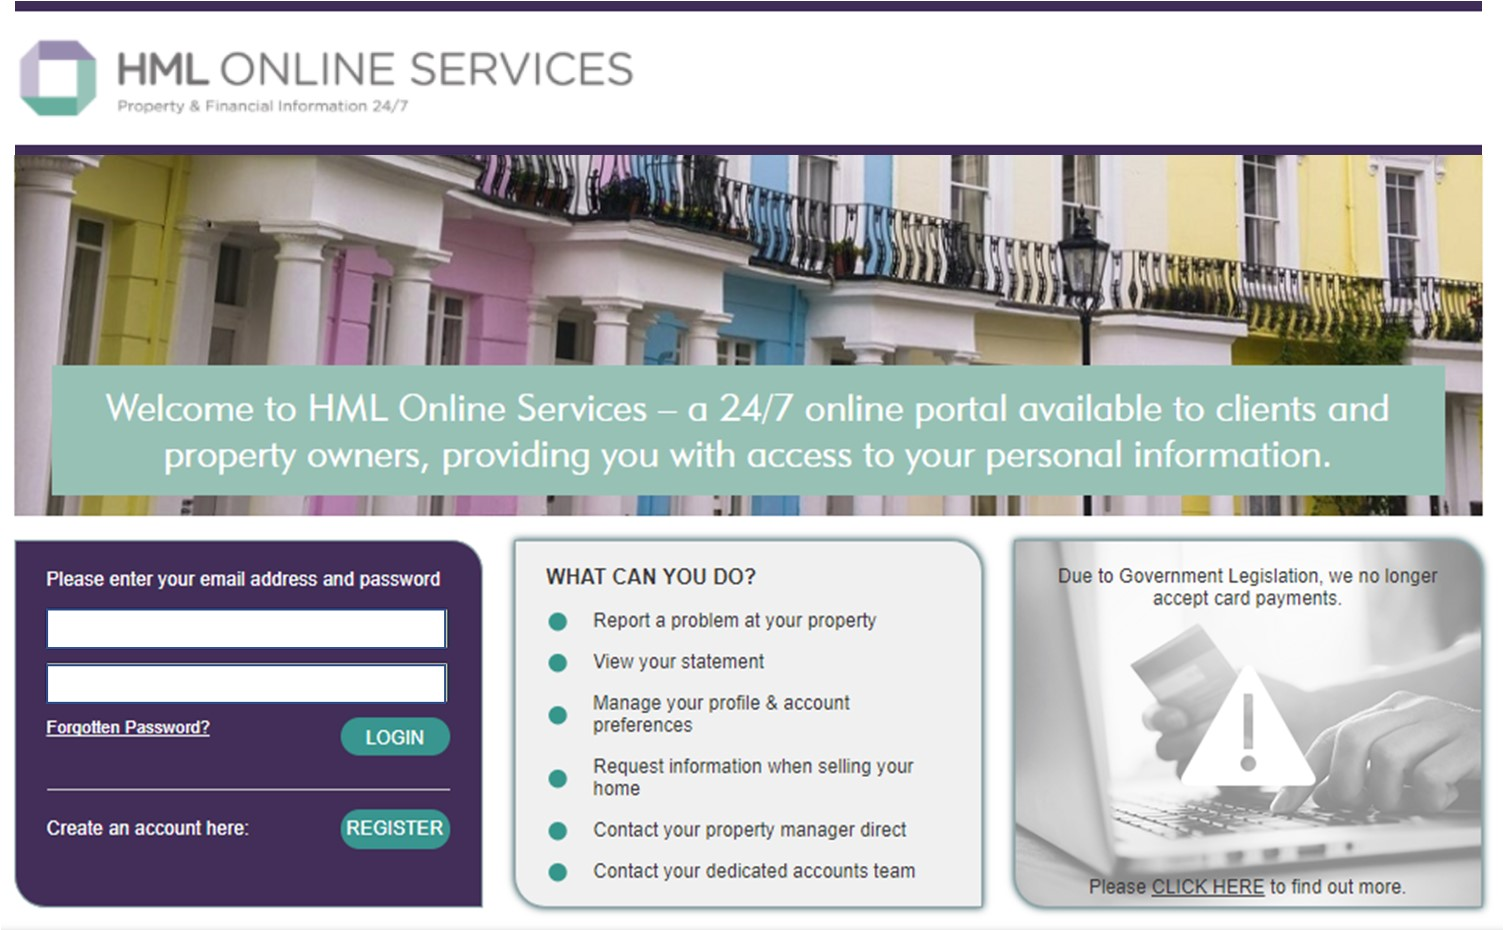 HML Online Services Homepage